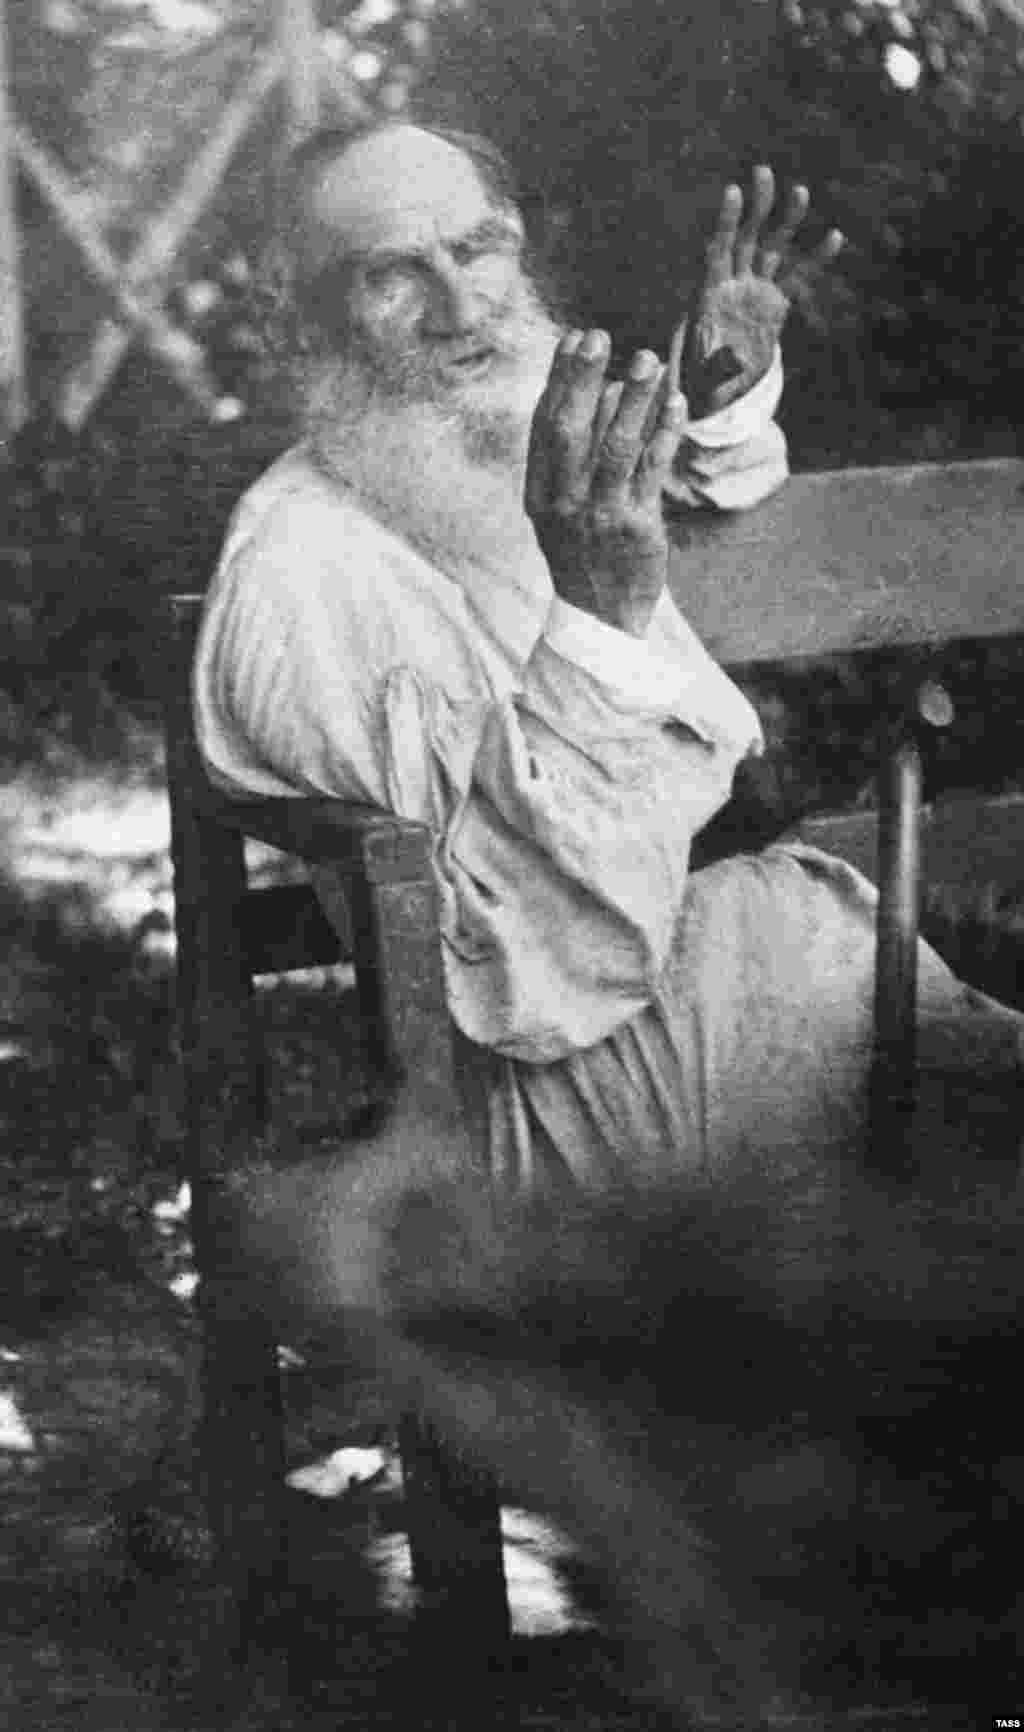 A rare image from 1909 of Tolstoy speaking. Less than a year later, amid an ongoing marital crisis, Tolstoy walked out of his house and into the snow. Then he boarded a train to an uncertain destination. He caught pneumonia during the journey and died on November 20, 1910, in a stationmaster's house.